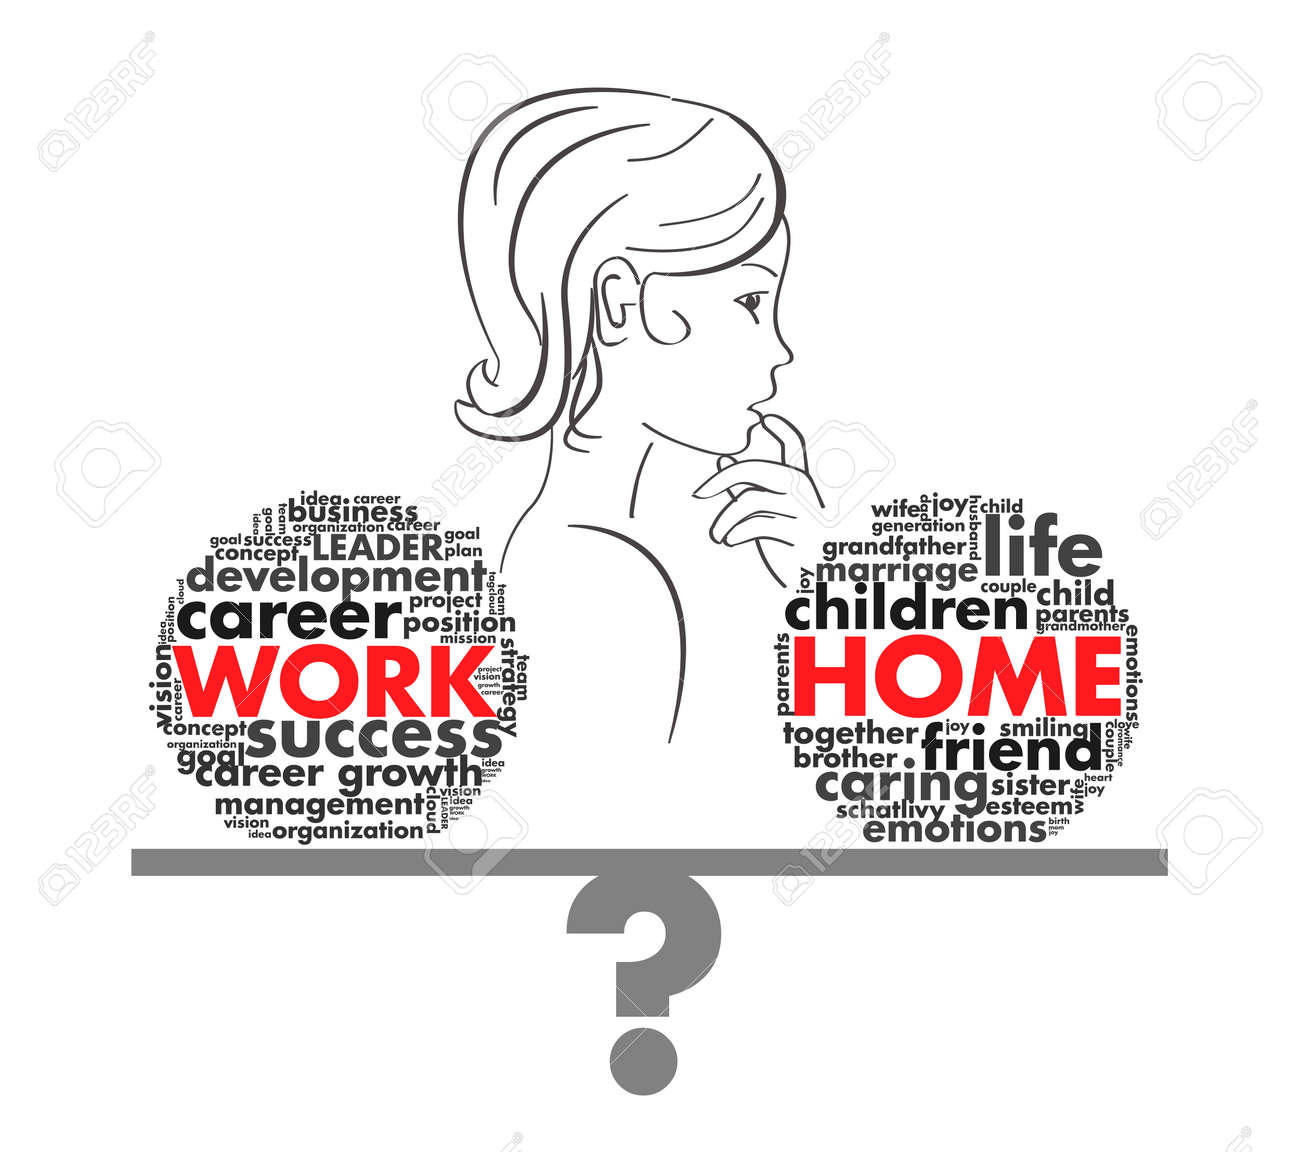 choice of a w in a job or career of letters royalty vector choice of a w in a job or career of letters